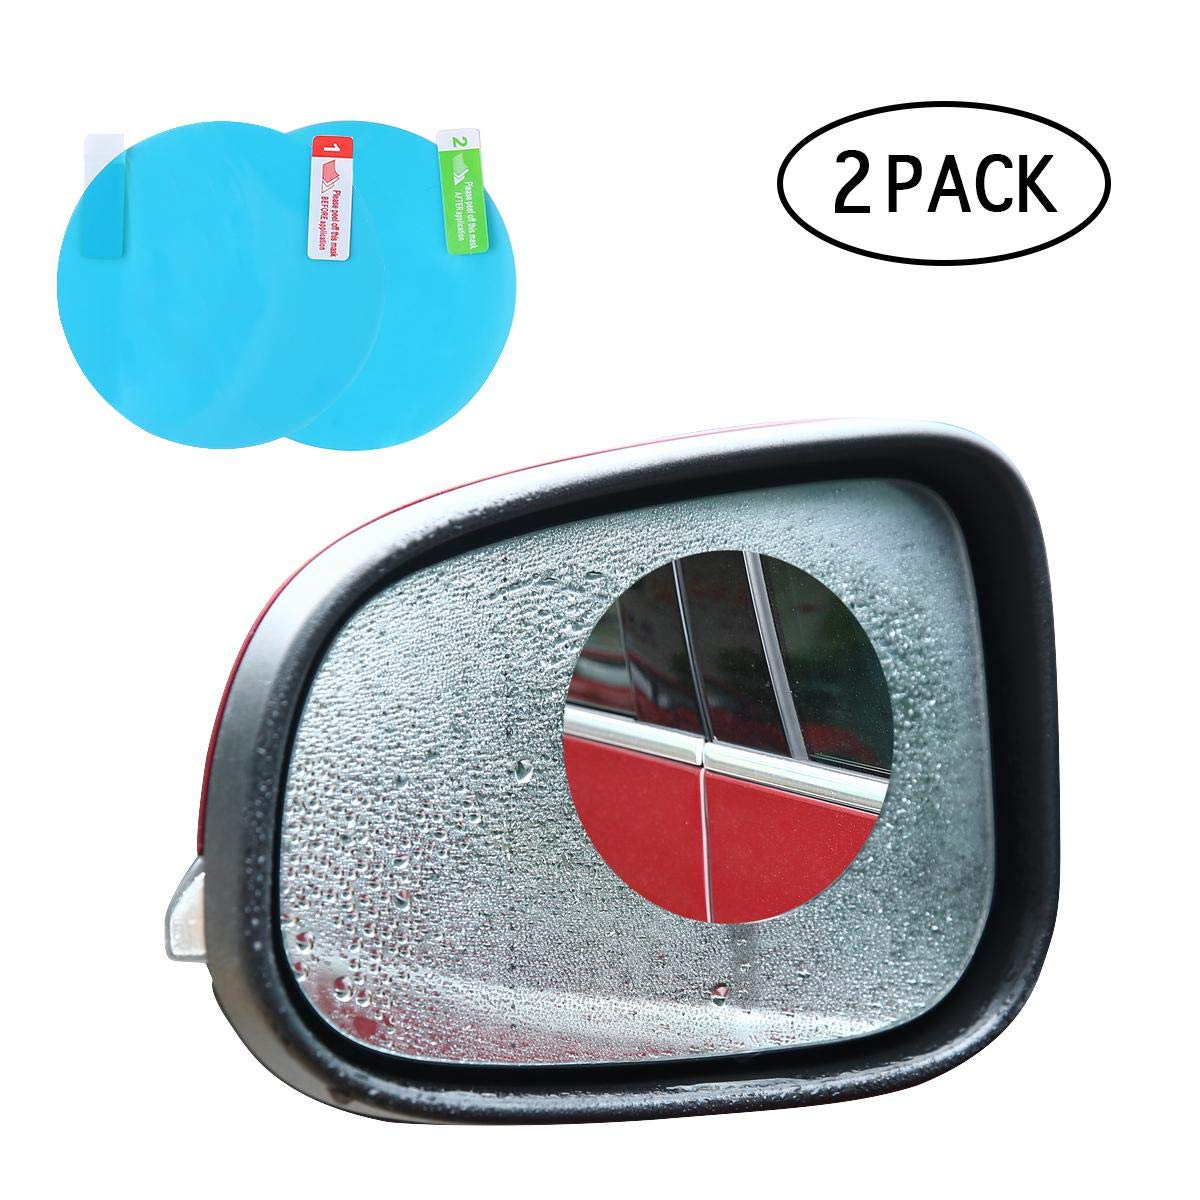 Car Rearview Mirror Protective Film (2 Pack) KOBWA Blind Spot Mirrors SUV & Blind Spot Mirrors Cars - Great Motorcycles, Trucks, Snowmobiles As Well